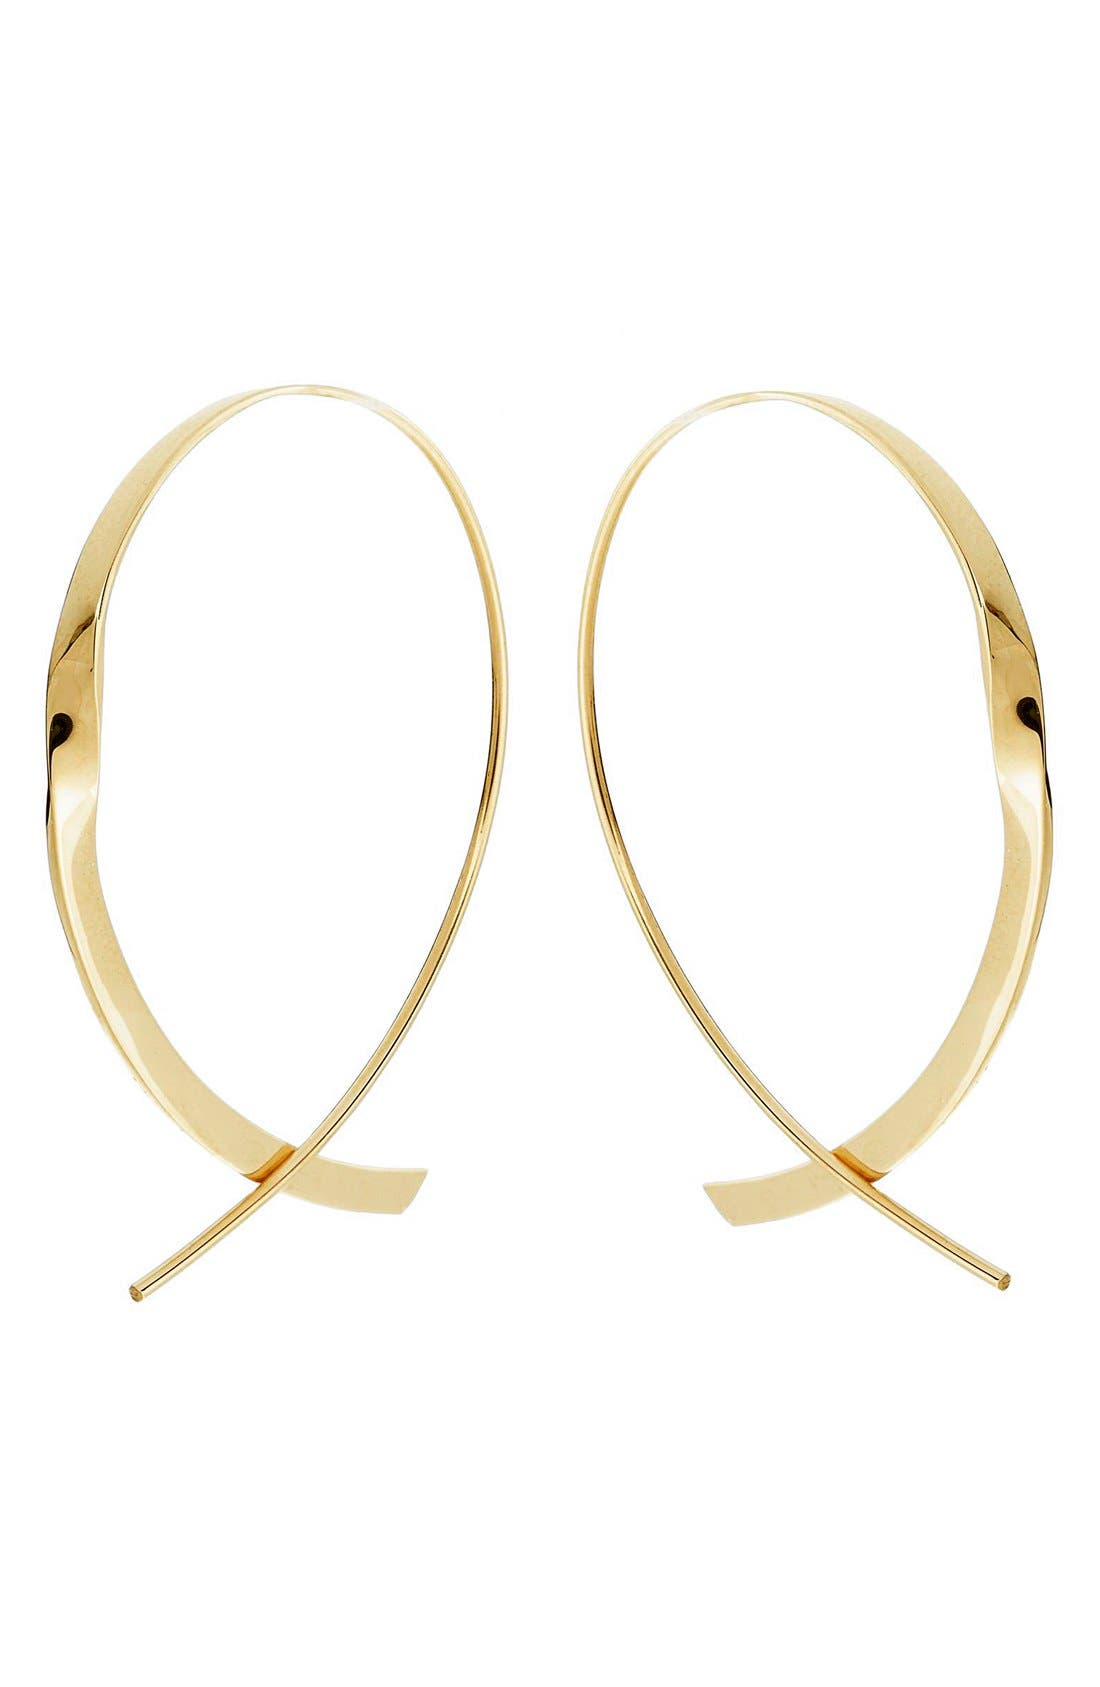 Lana Jewelry 'Flat Upside Down ' Hoop Earrings